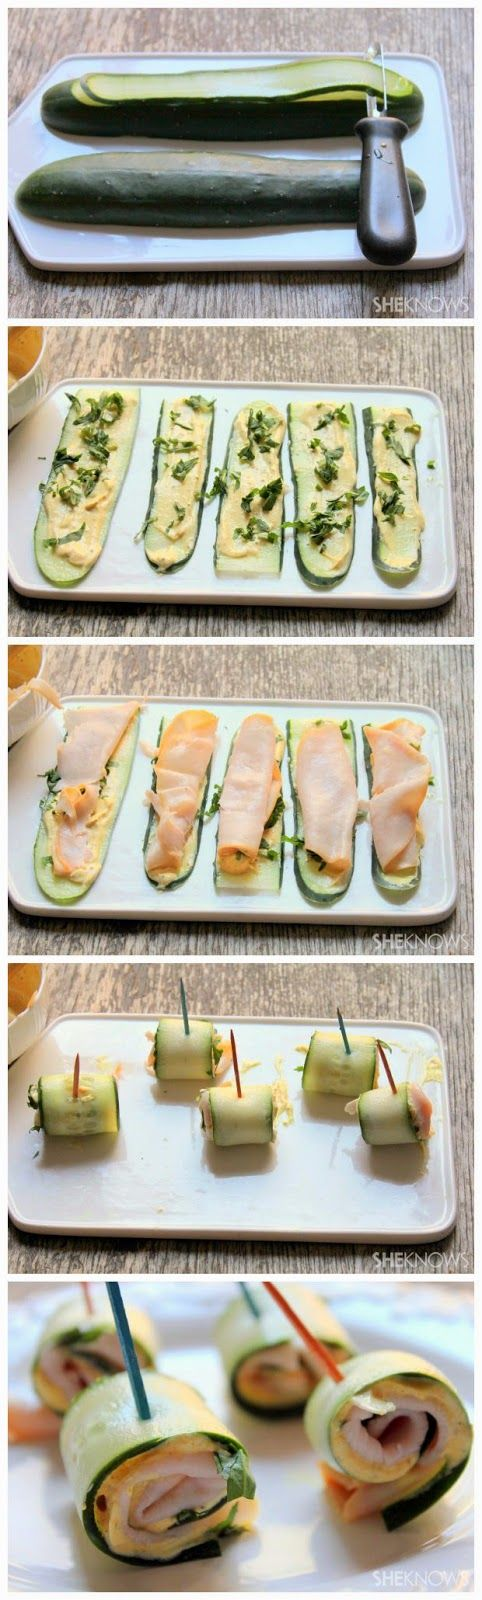 Cucumber Roll Ups - Low Carb and bursting with flavor! #fitgirlcode #healthy #cleaneating